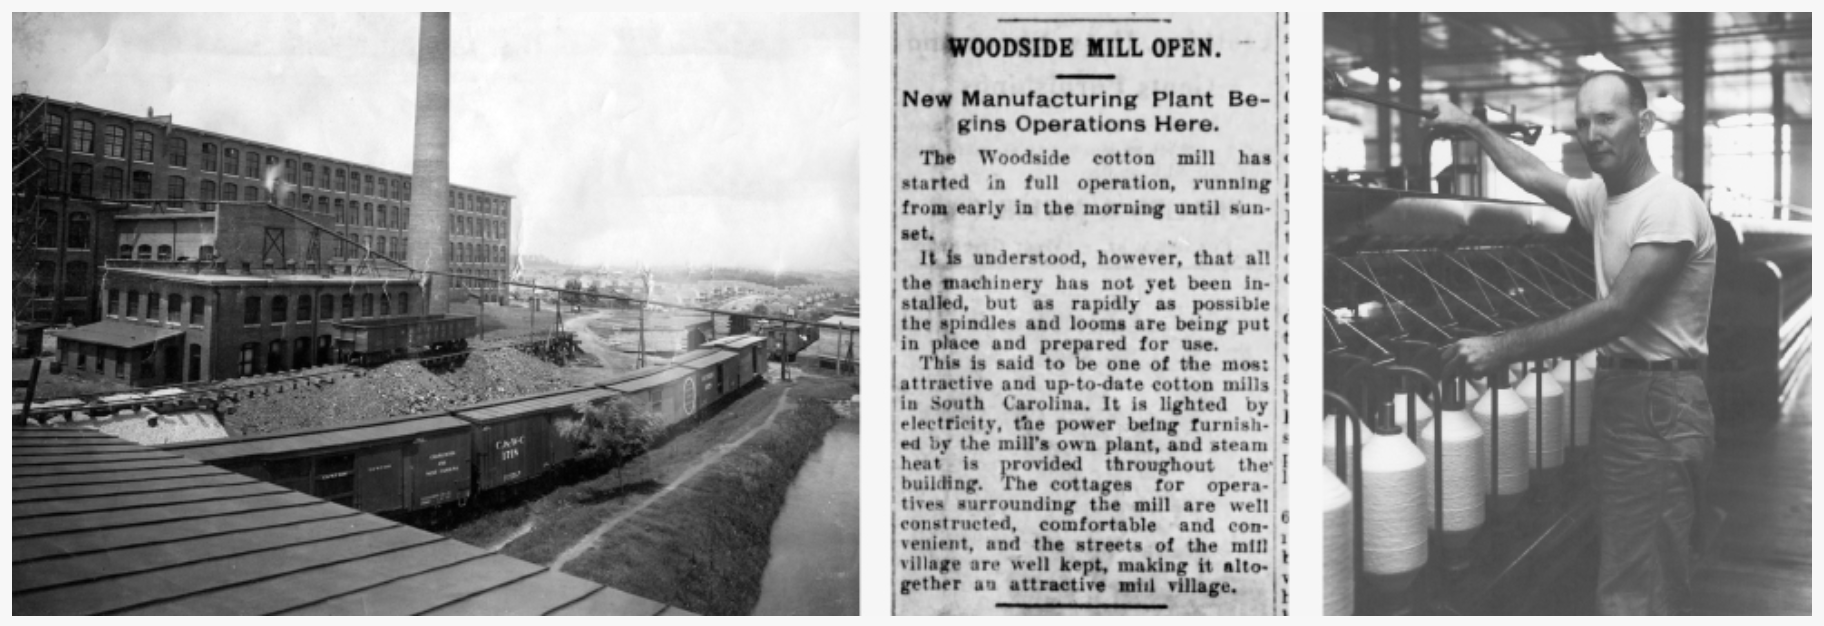 Woodside Mill and news coverage of the opening | Photo provided by The Lofts at Woodside Mill